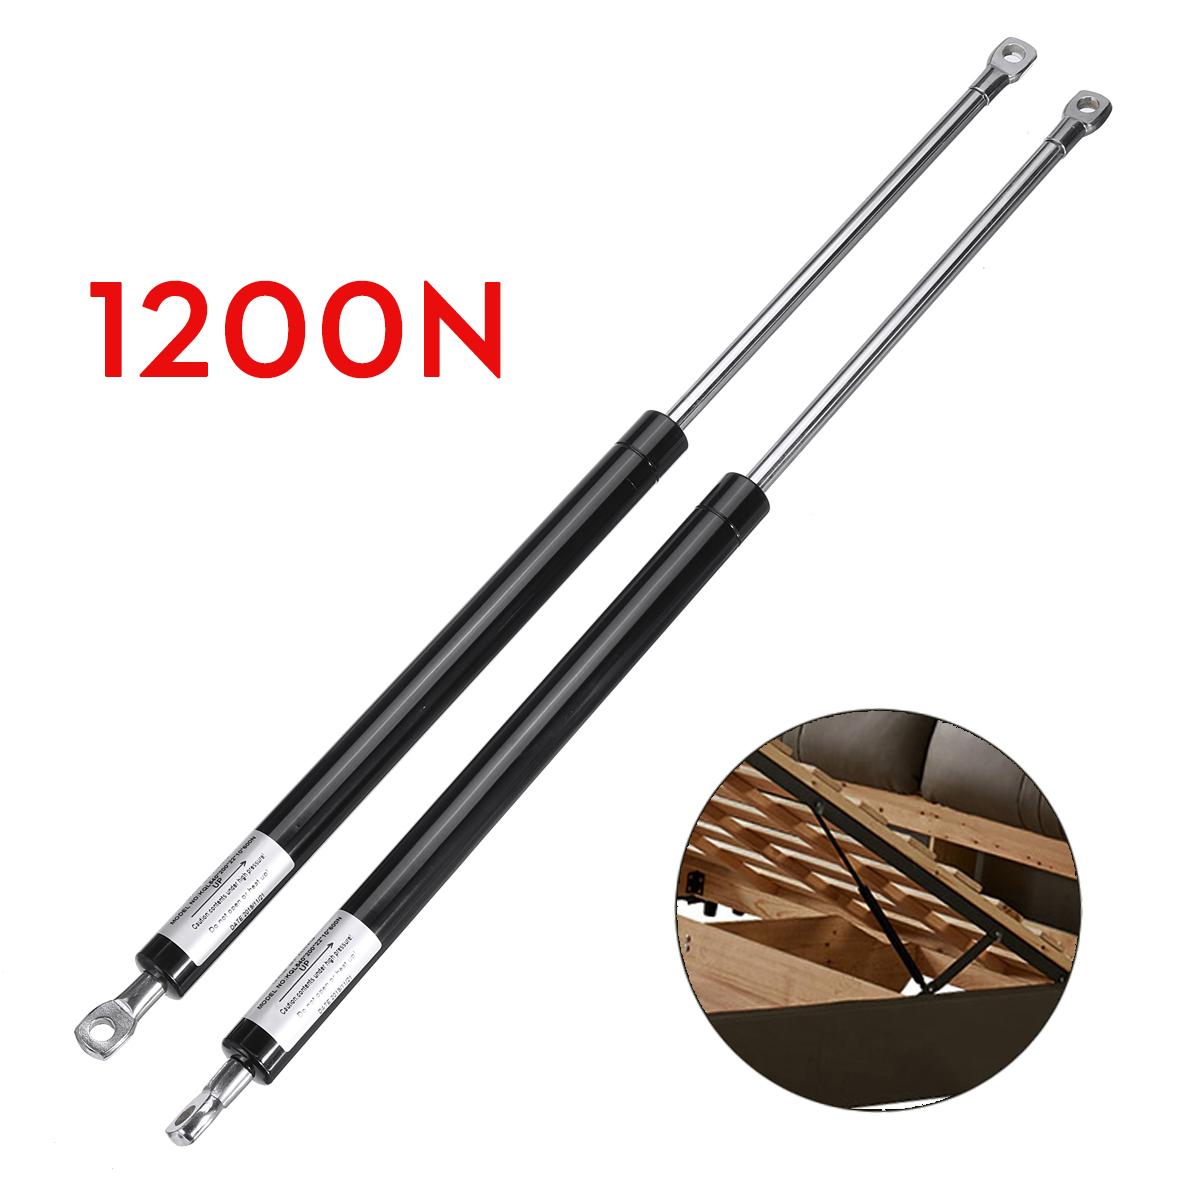 2X 54cm 540mm 600-1200N Universal Shock Lift Strut Support Bar Gas Spring Lift Up Pneumatic Support For Ottoman Storage Bed